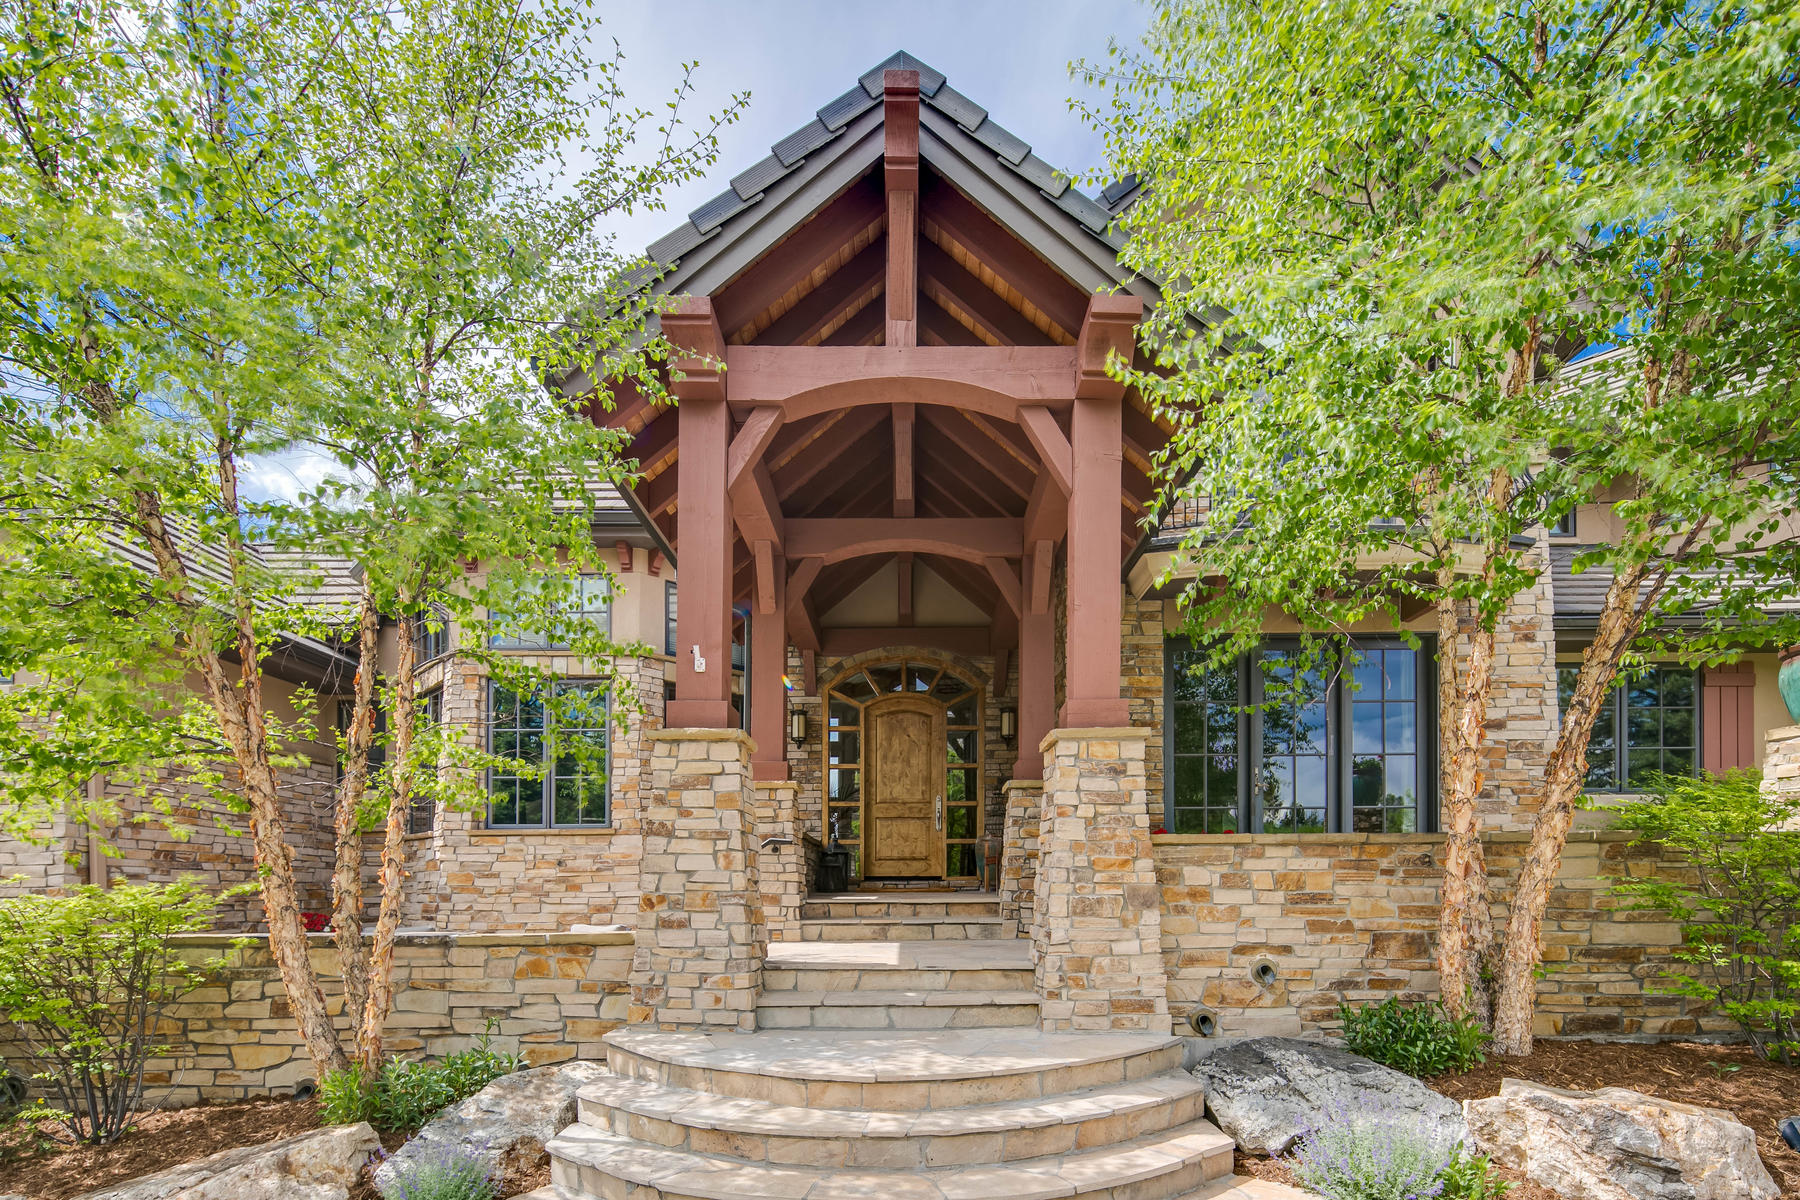 Property for Active at 1121 Northwood Ln 1121 Northwood Ln Castle Rock, Colorado 80108 United States